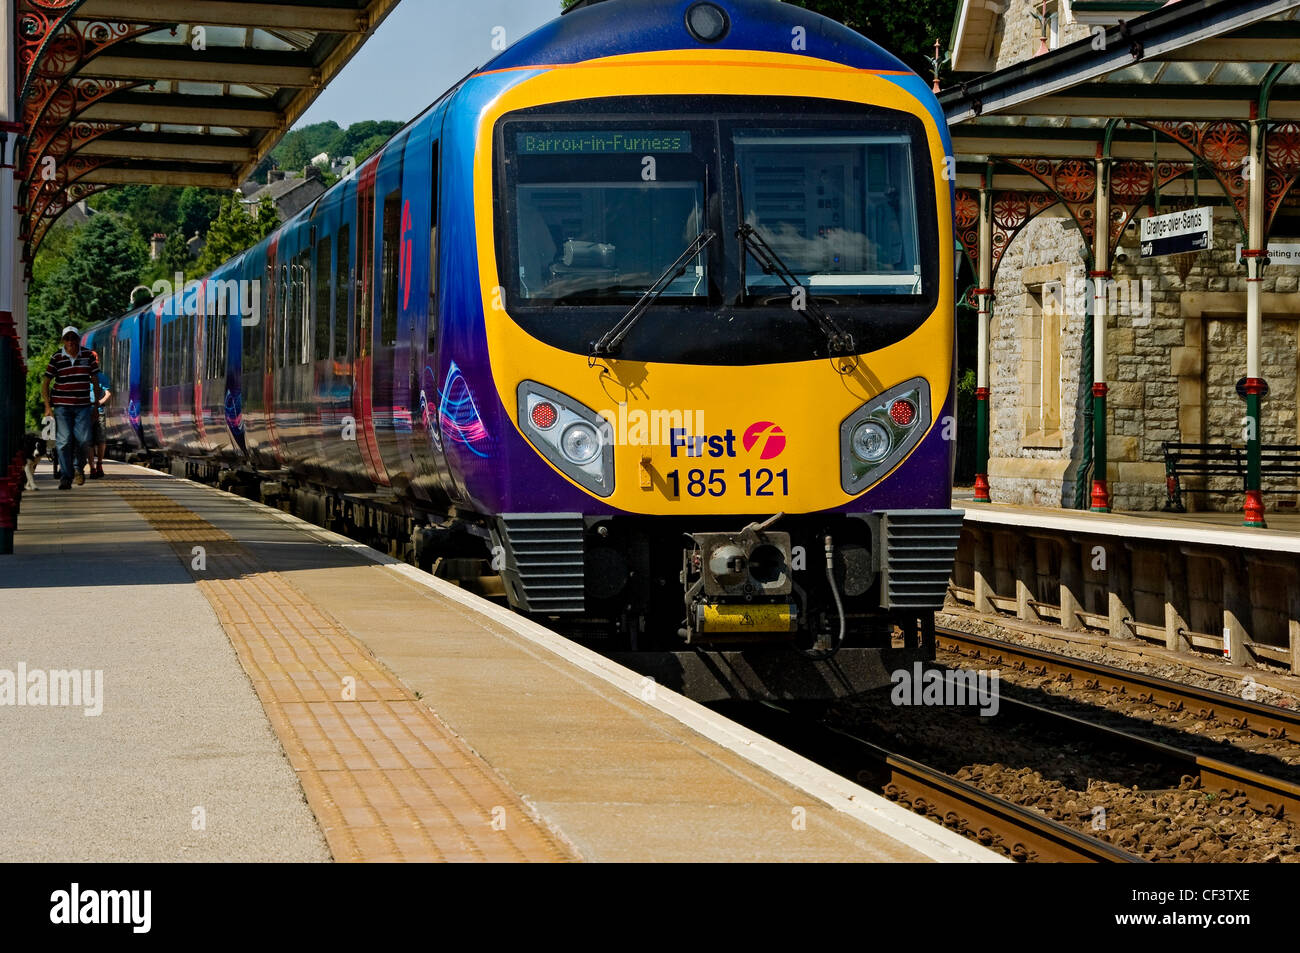 A First TransPennine Express train waiting to depart Grange-over-Sands railway station. - Stock Image